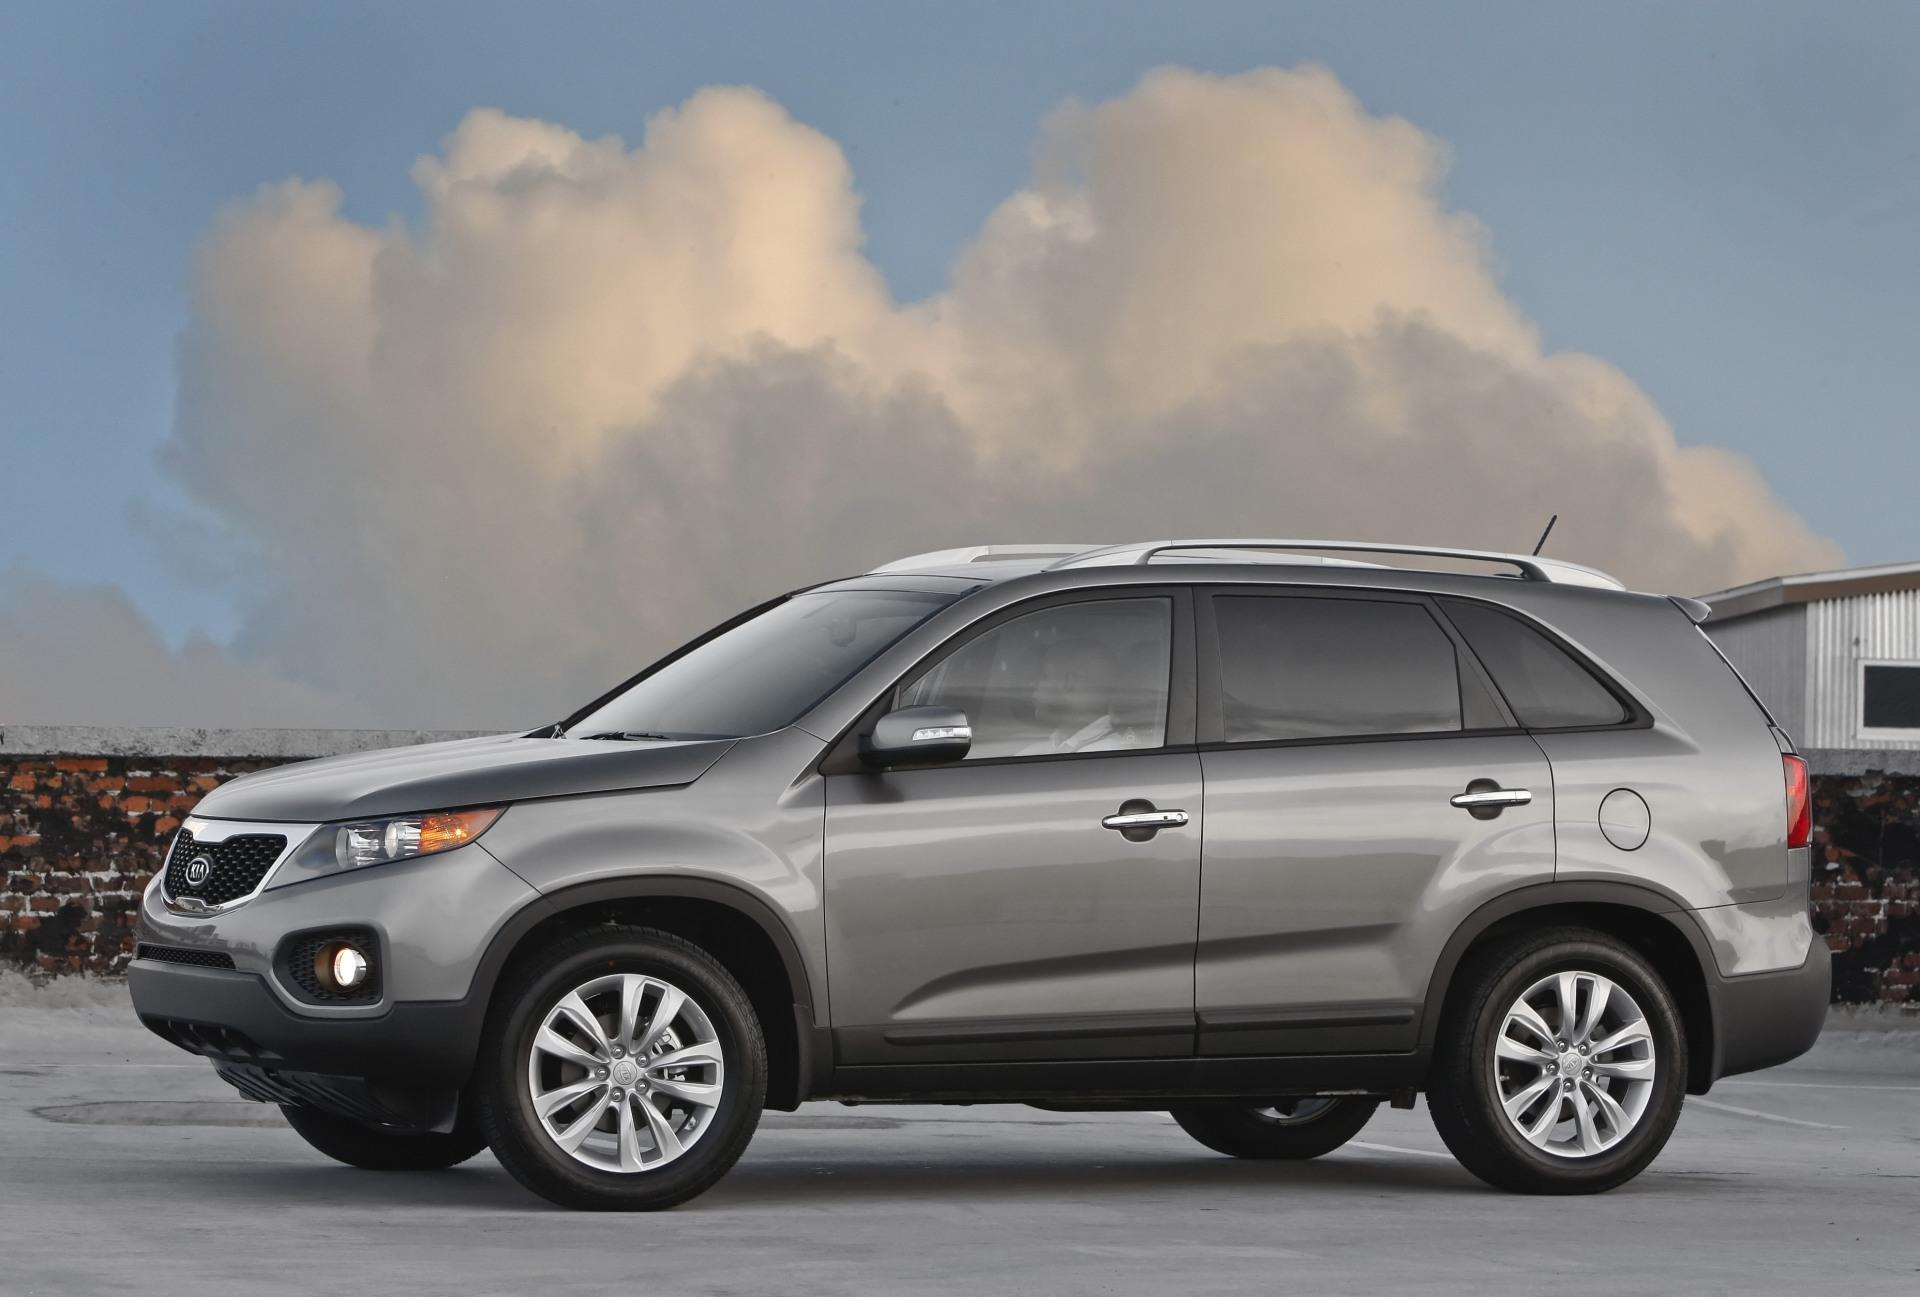 2011 kia sorento technical specifications and data engine. Black Bedroom Furniture Sets. Home Design Ideas